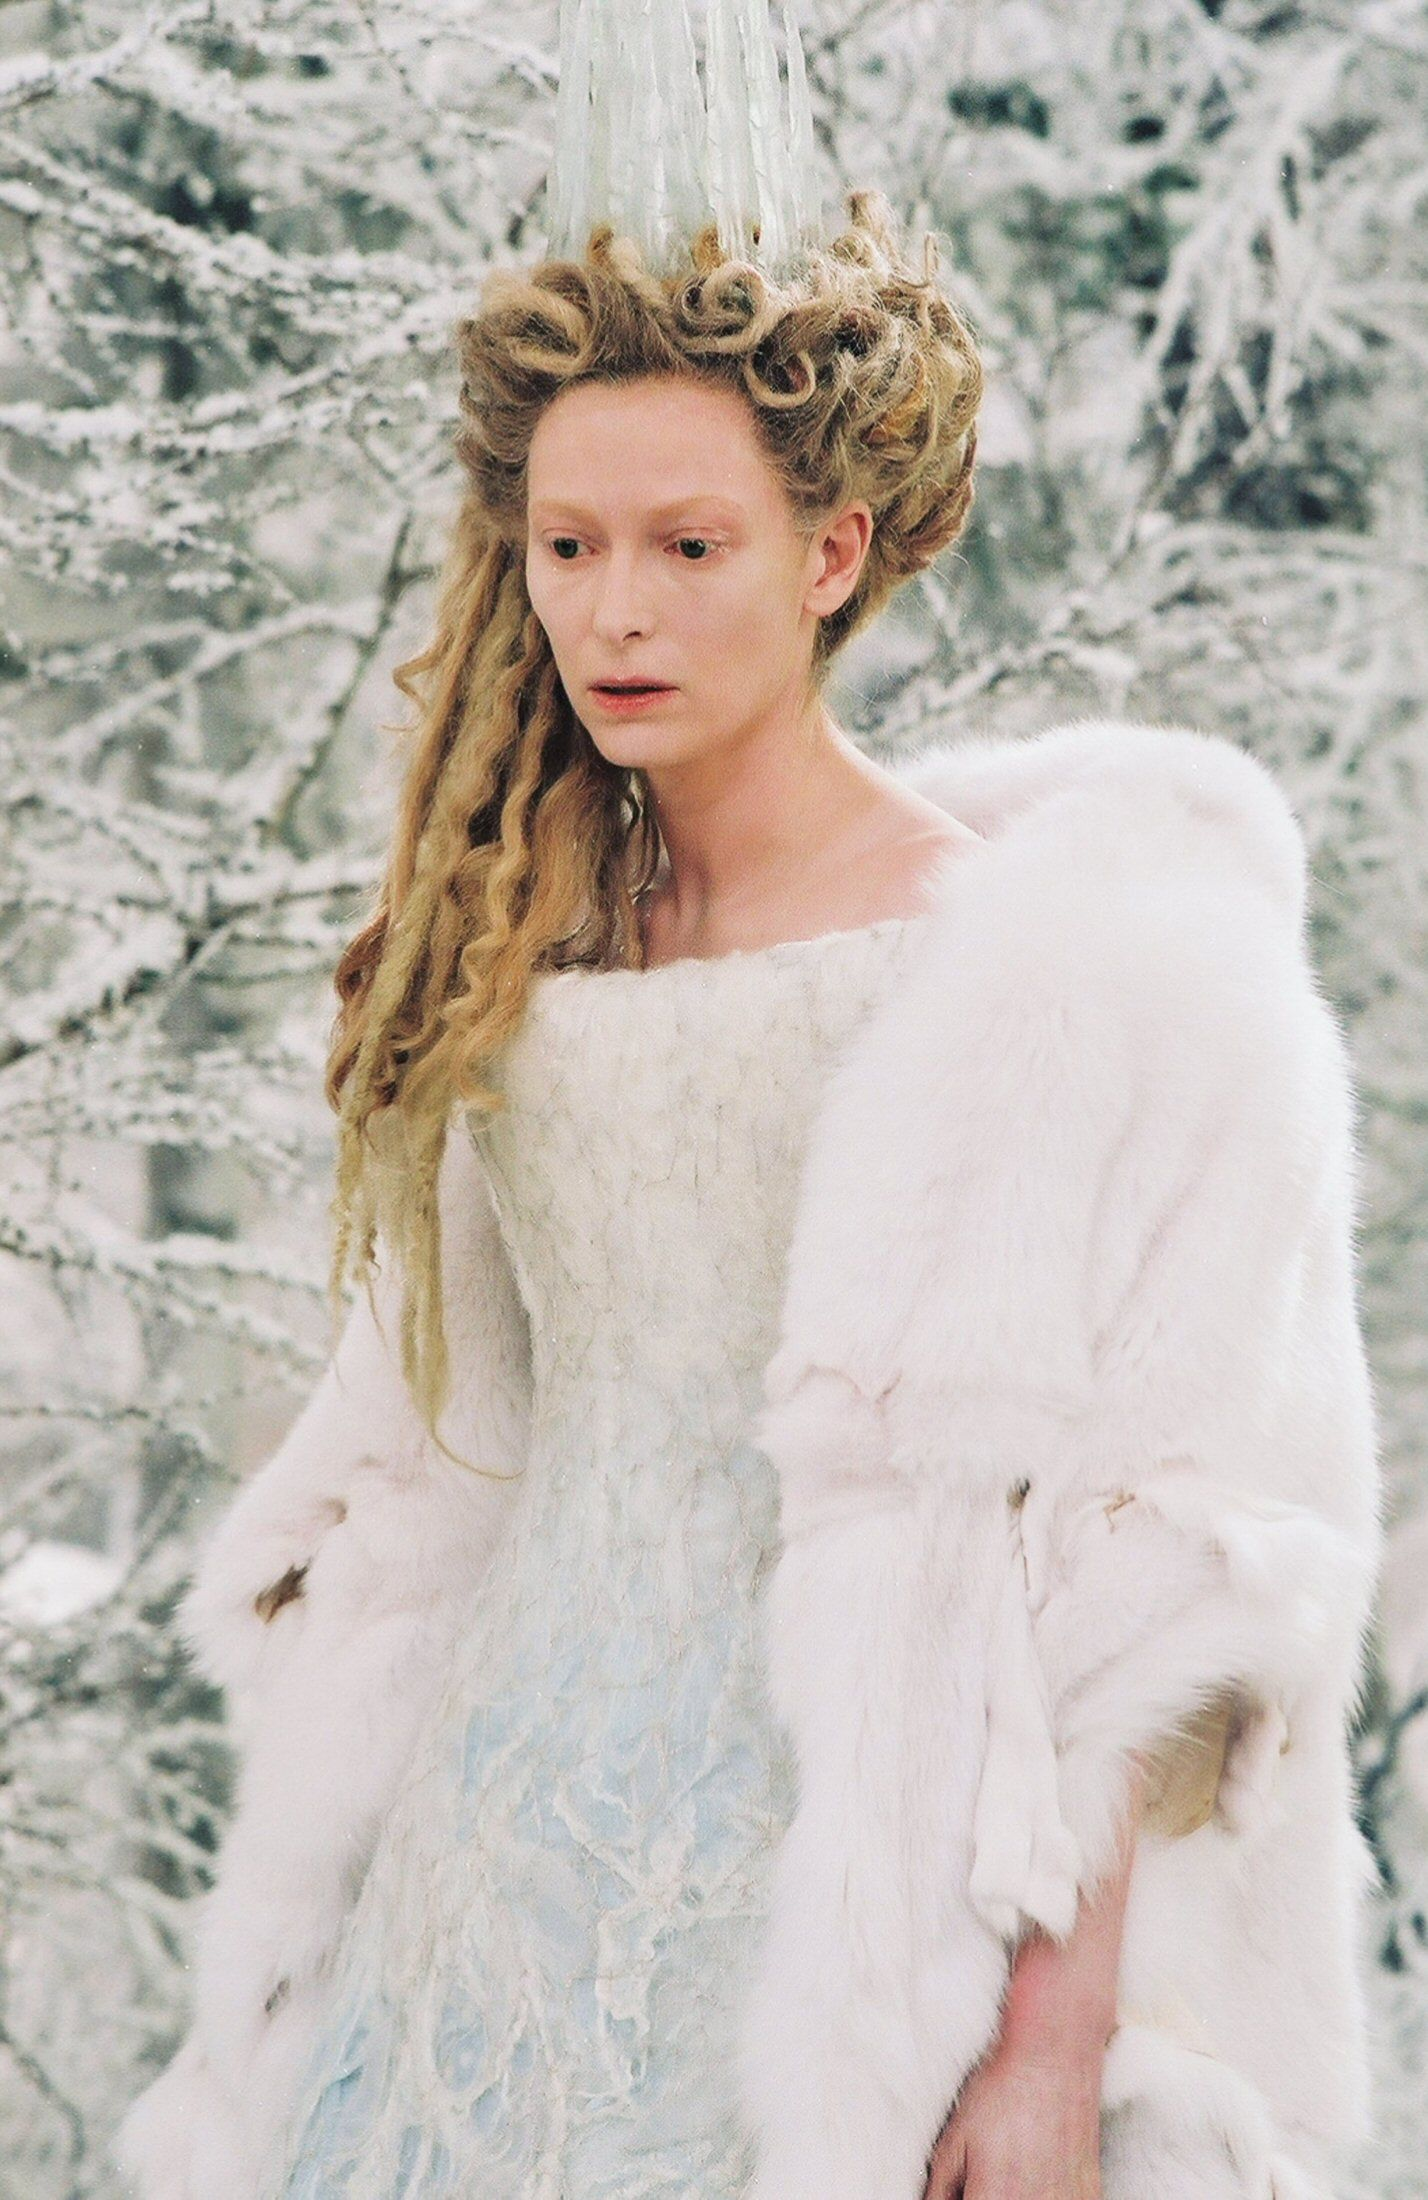 The ten faces (or more) of Tilda Swinton | Narnia, Tilda swinton ...